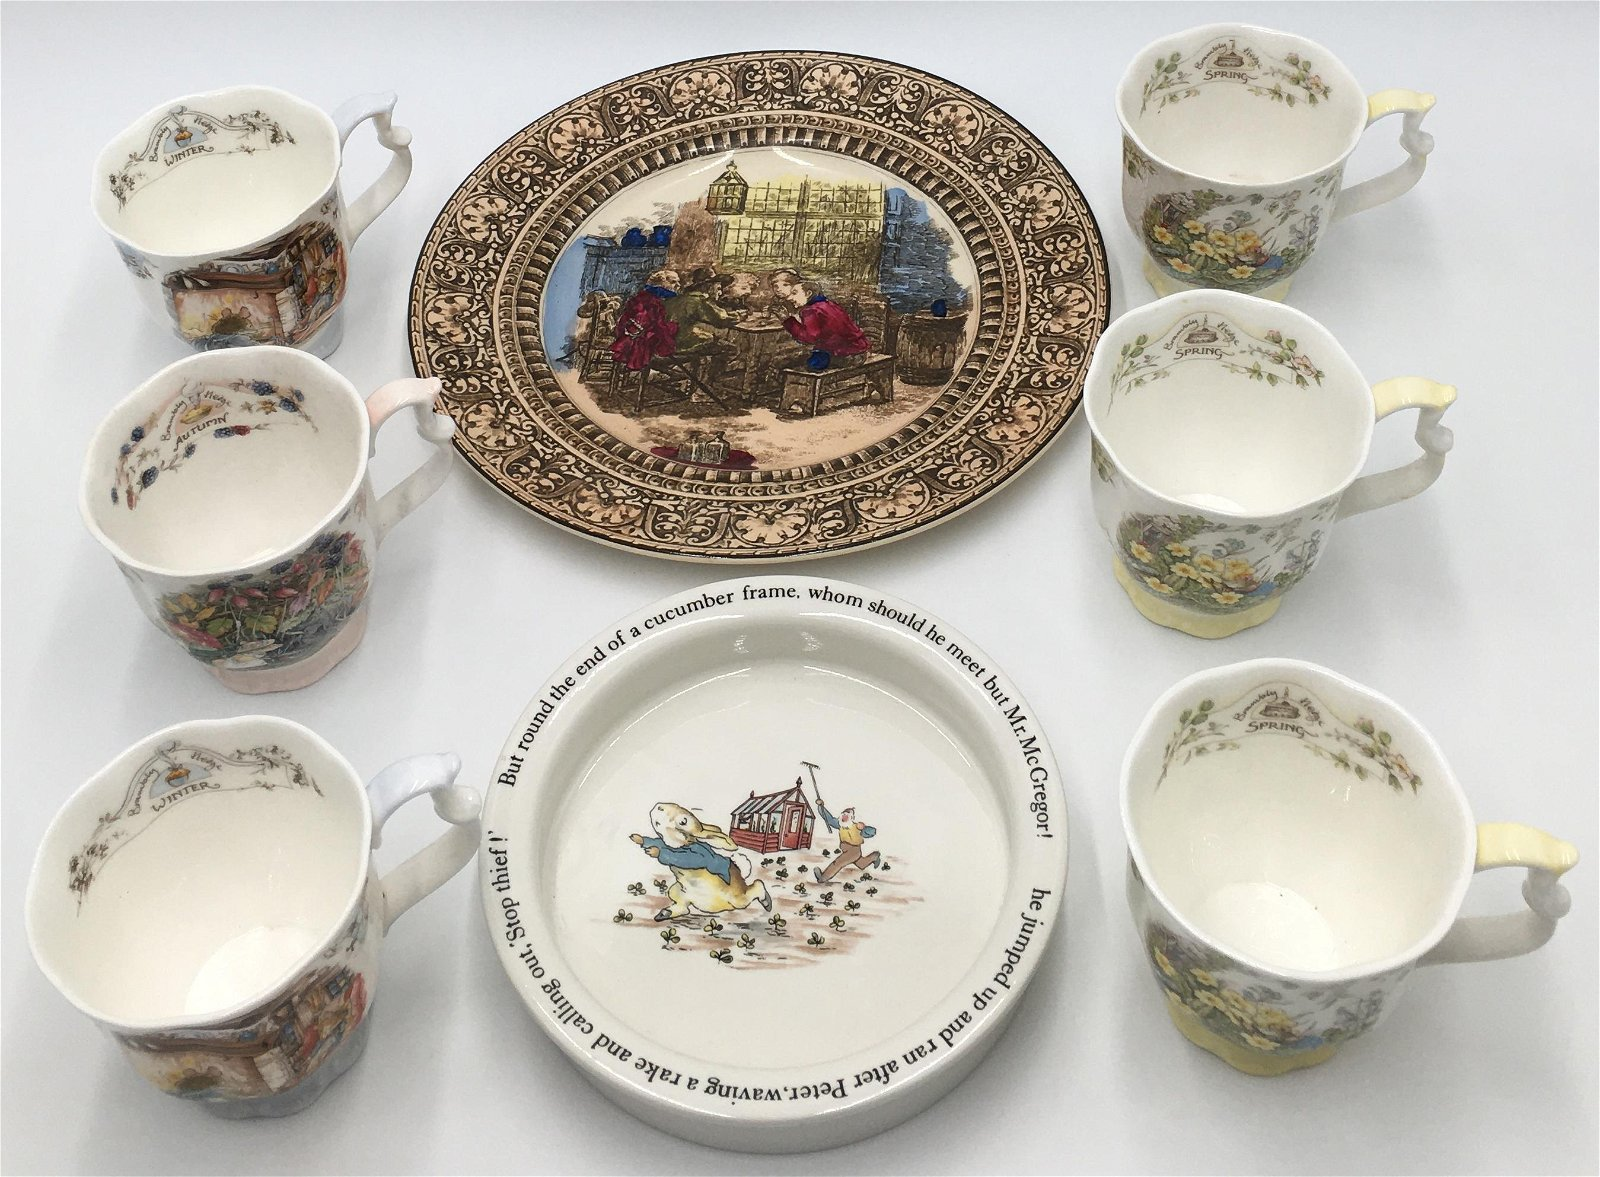 Lot of 8 China Pieces, Mostly Royal Doulton.